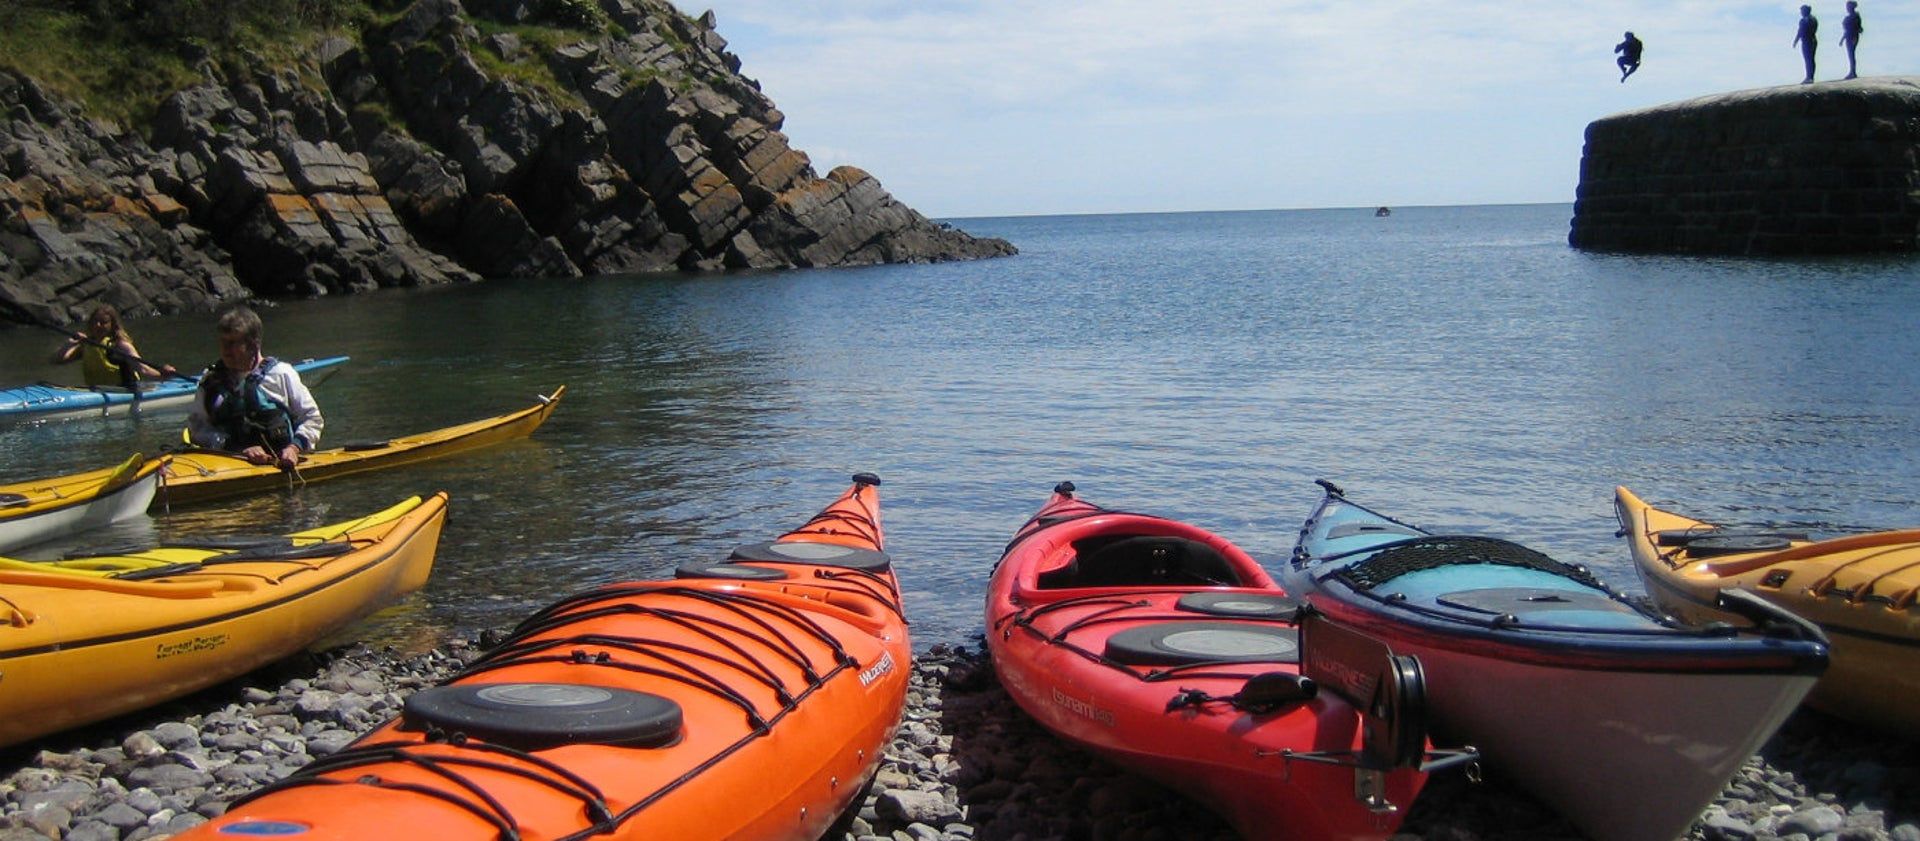 Best beaches for watersports | National TrustVisit our Facebook pageVisit our Twitter pageVisit our